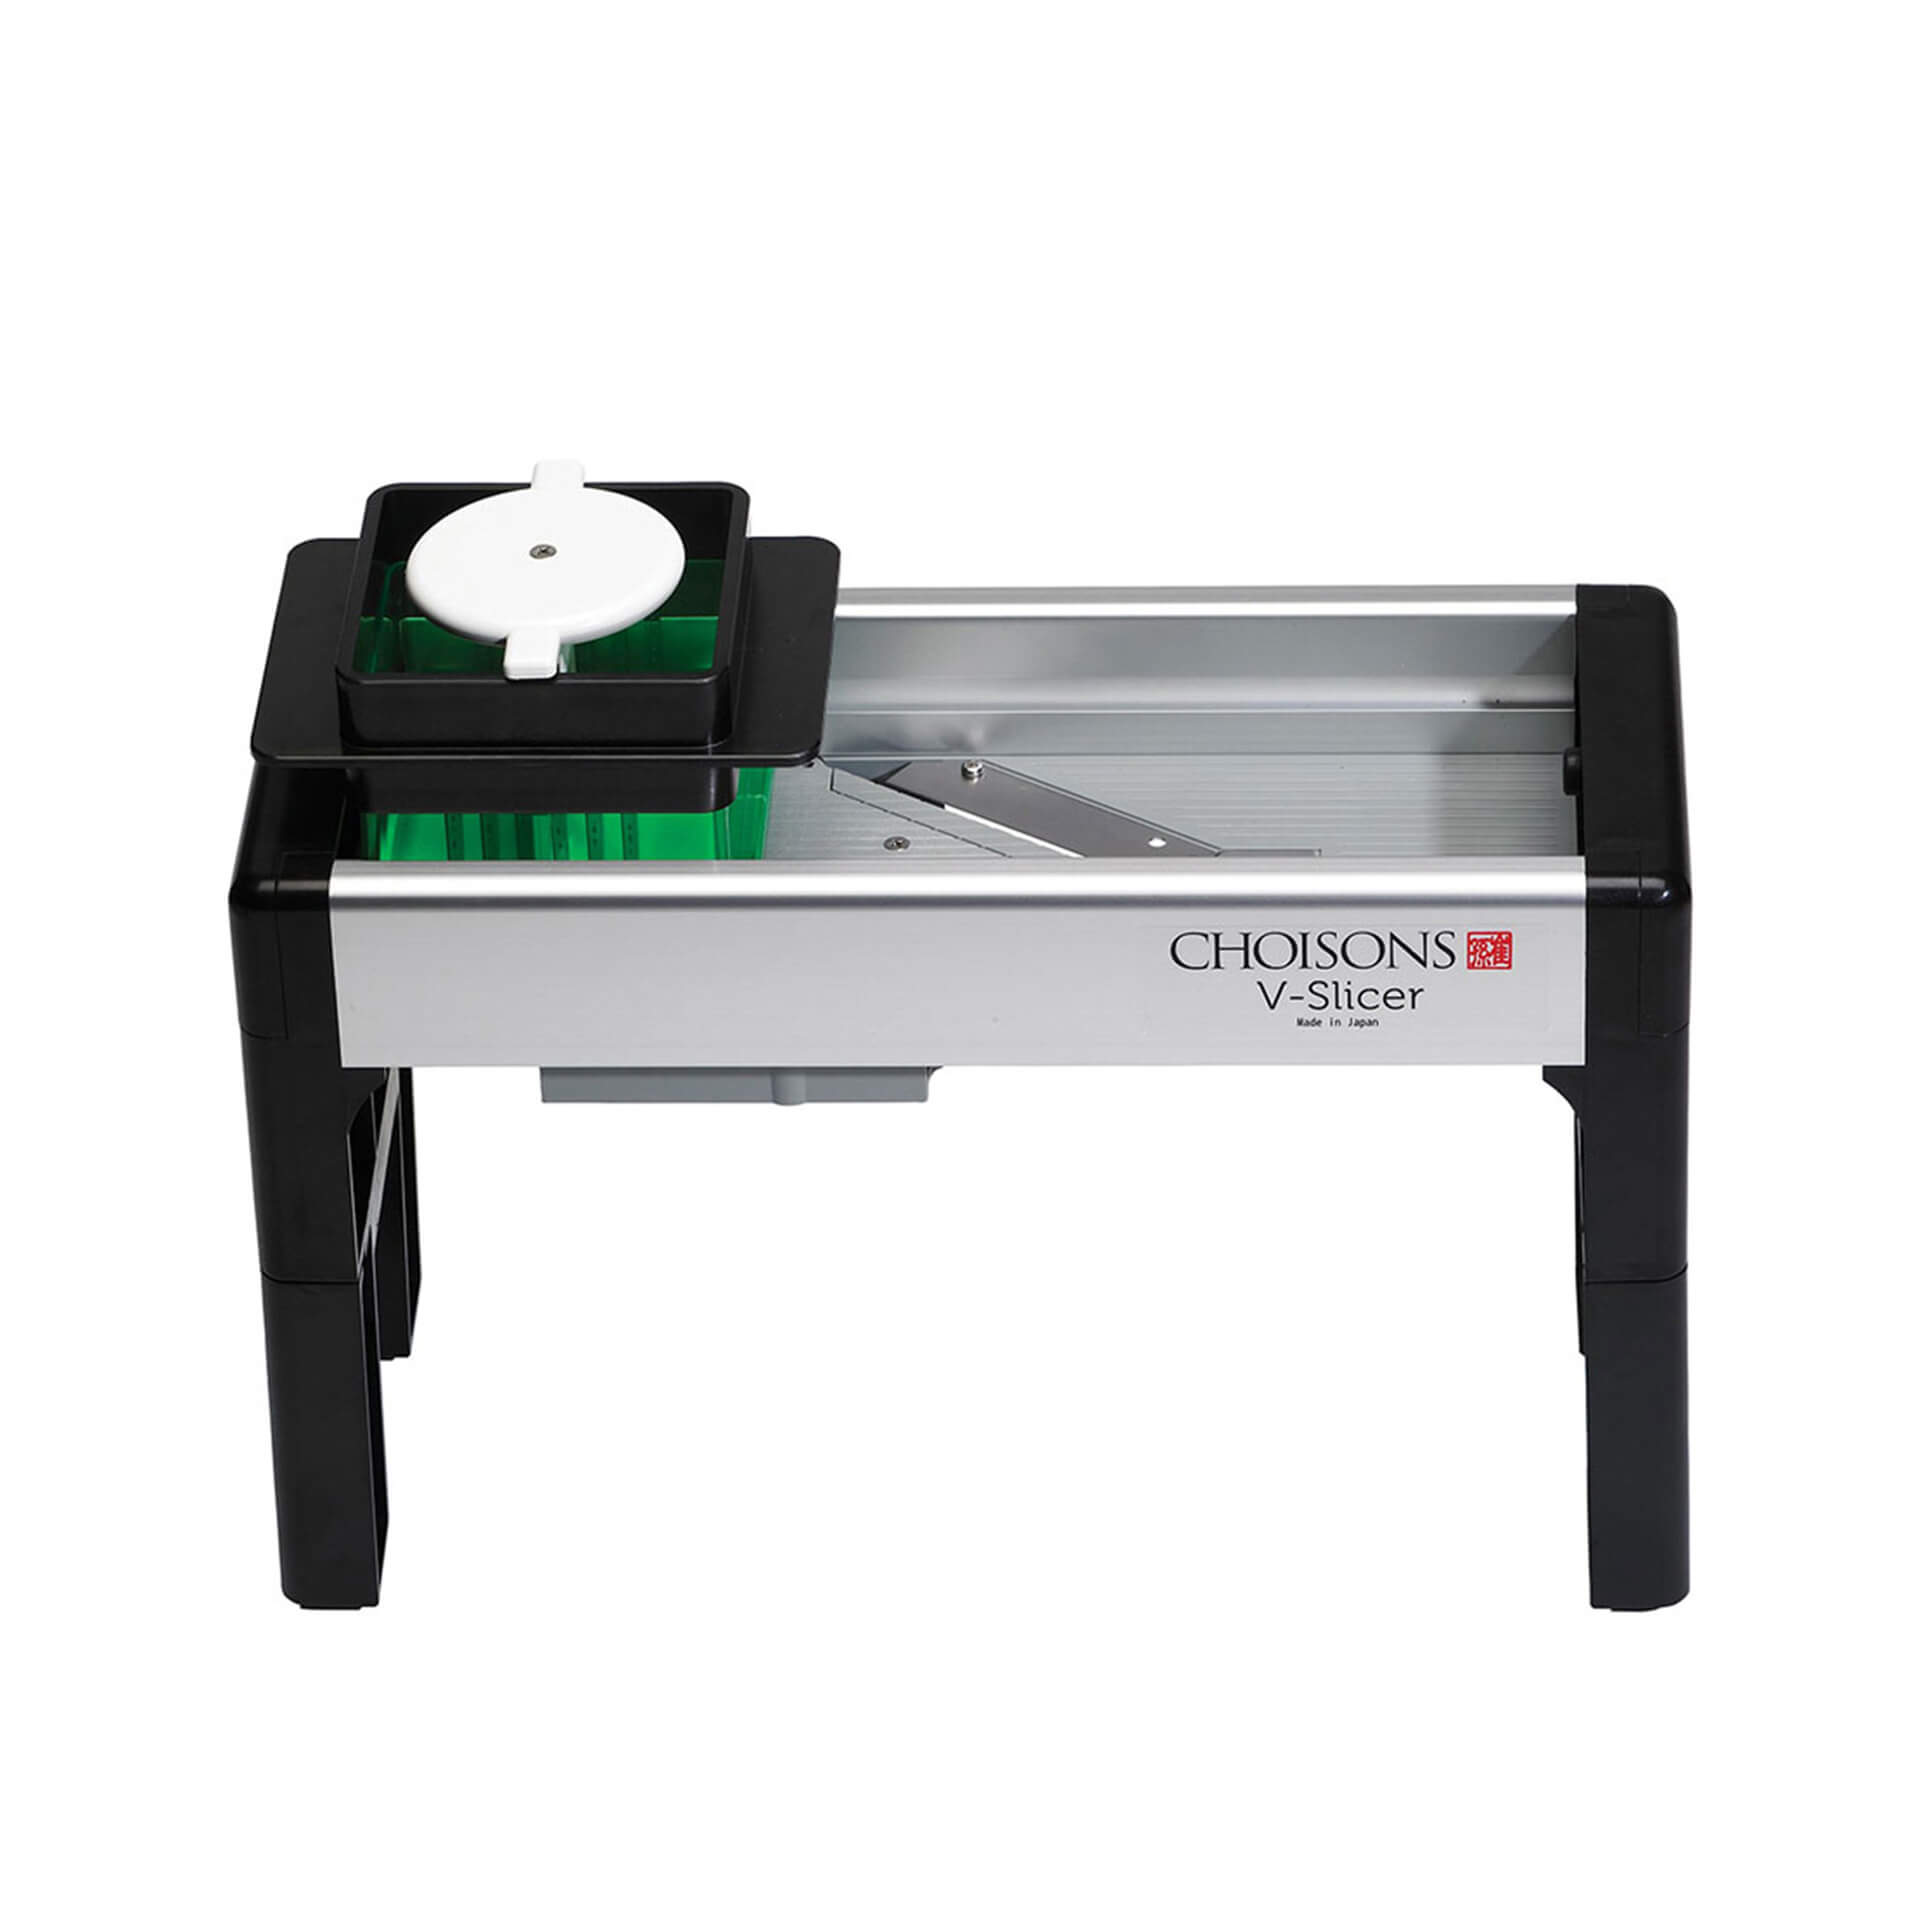 Tribest Choisons V-Slicer